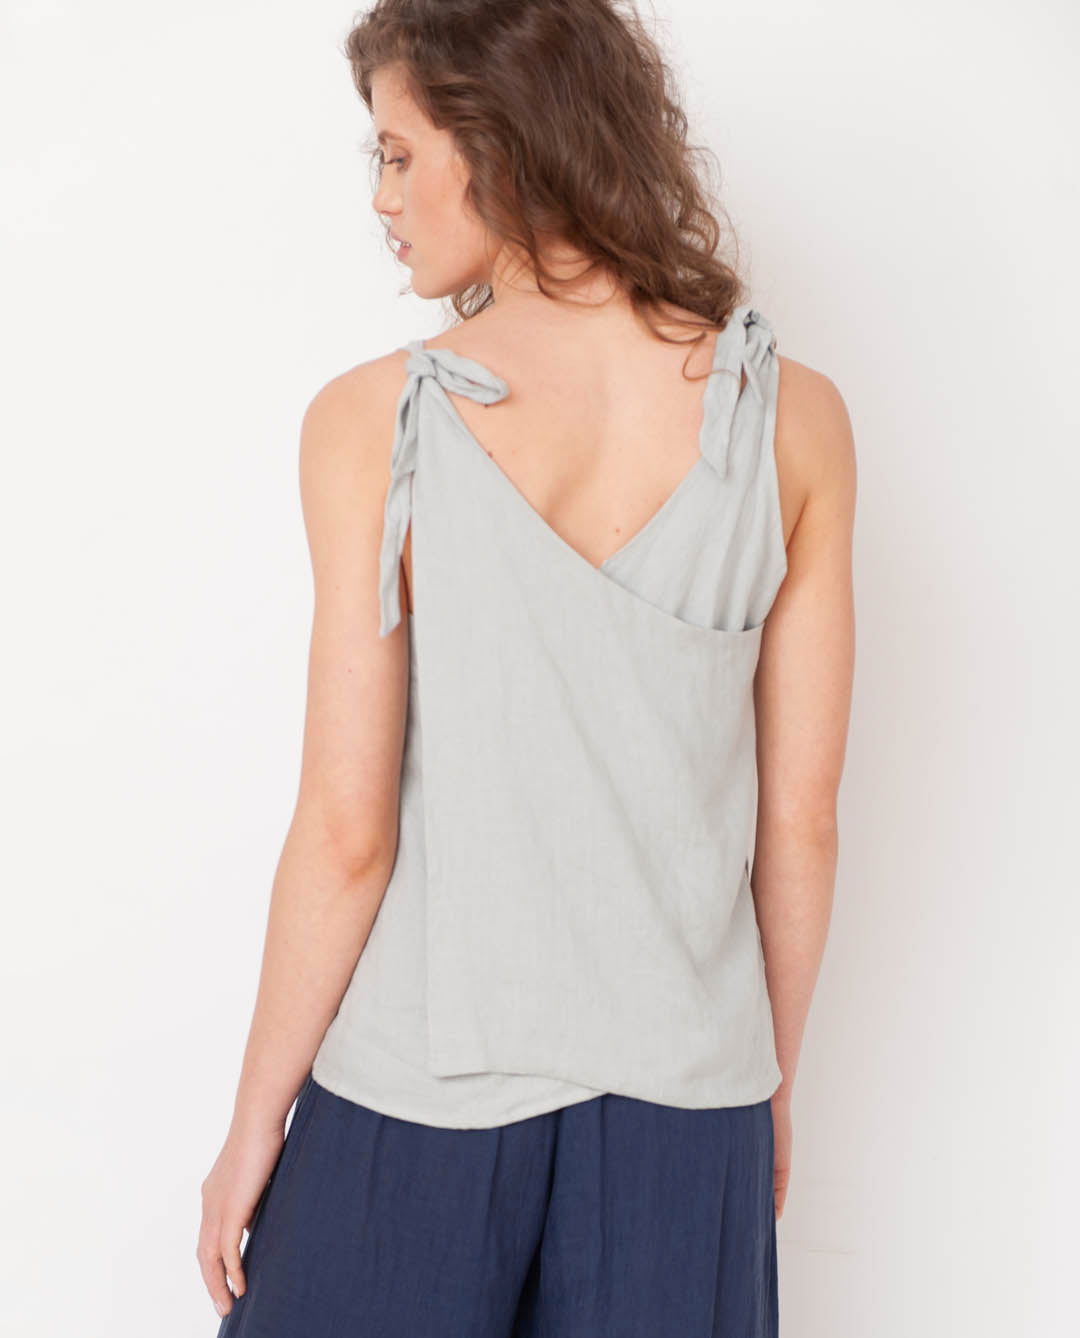 Emma-May Organic Cotton & Linen Top In Dove